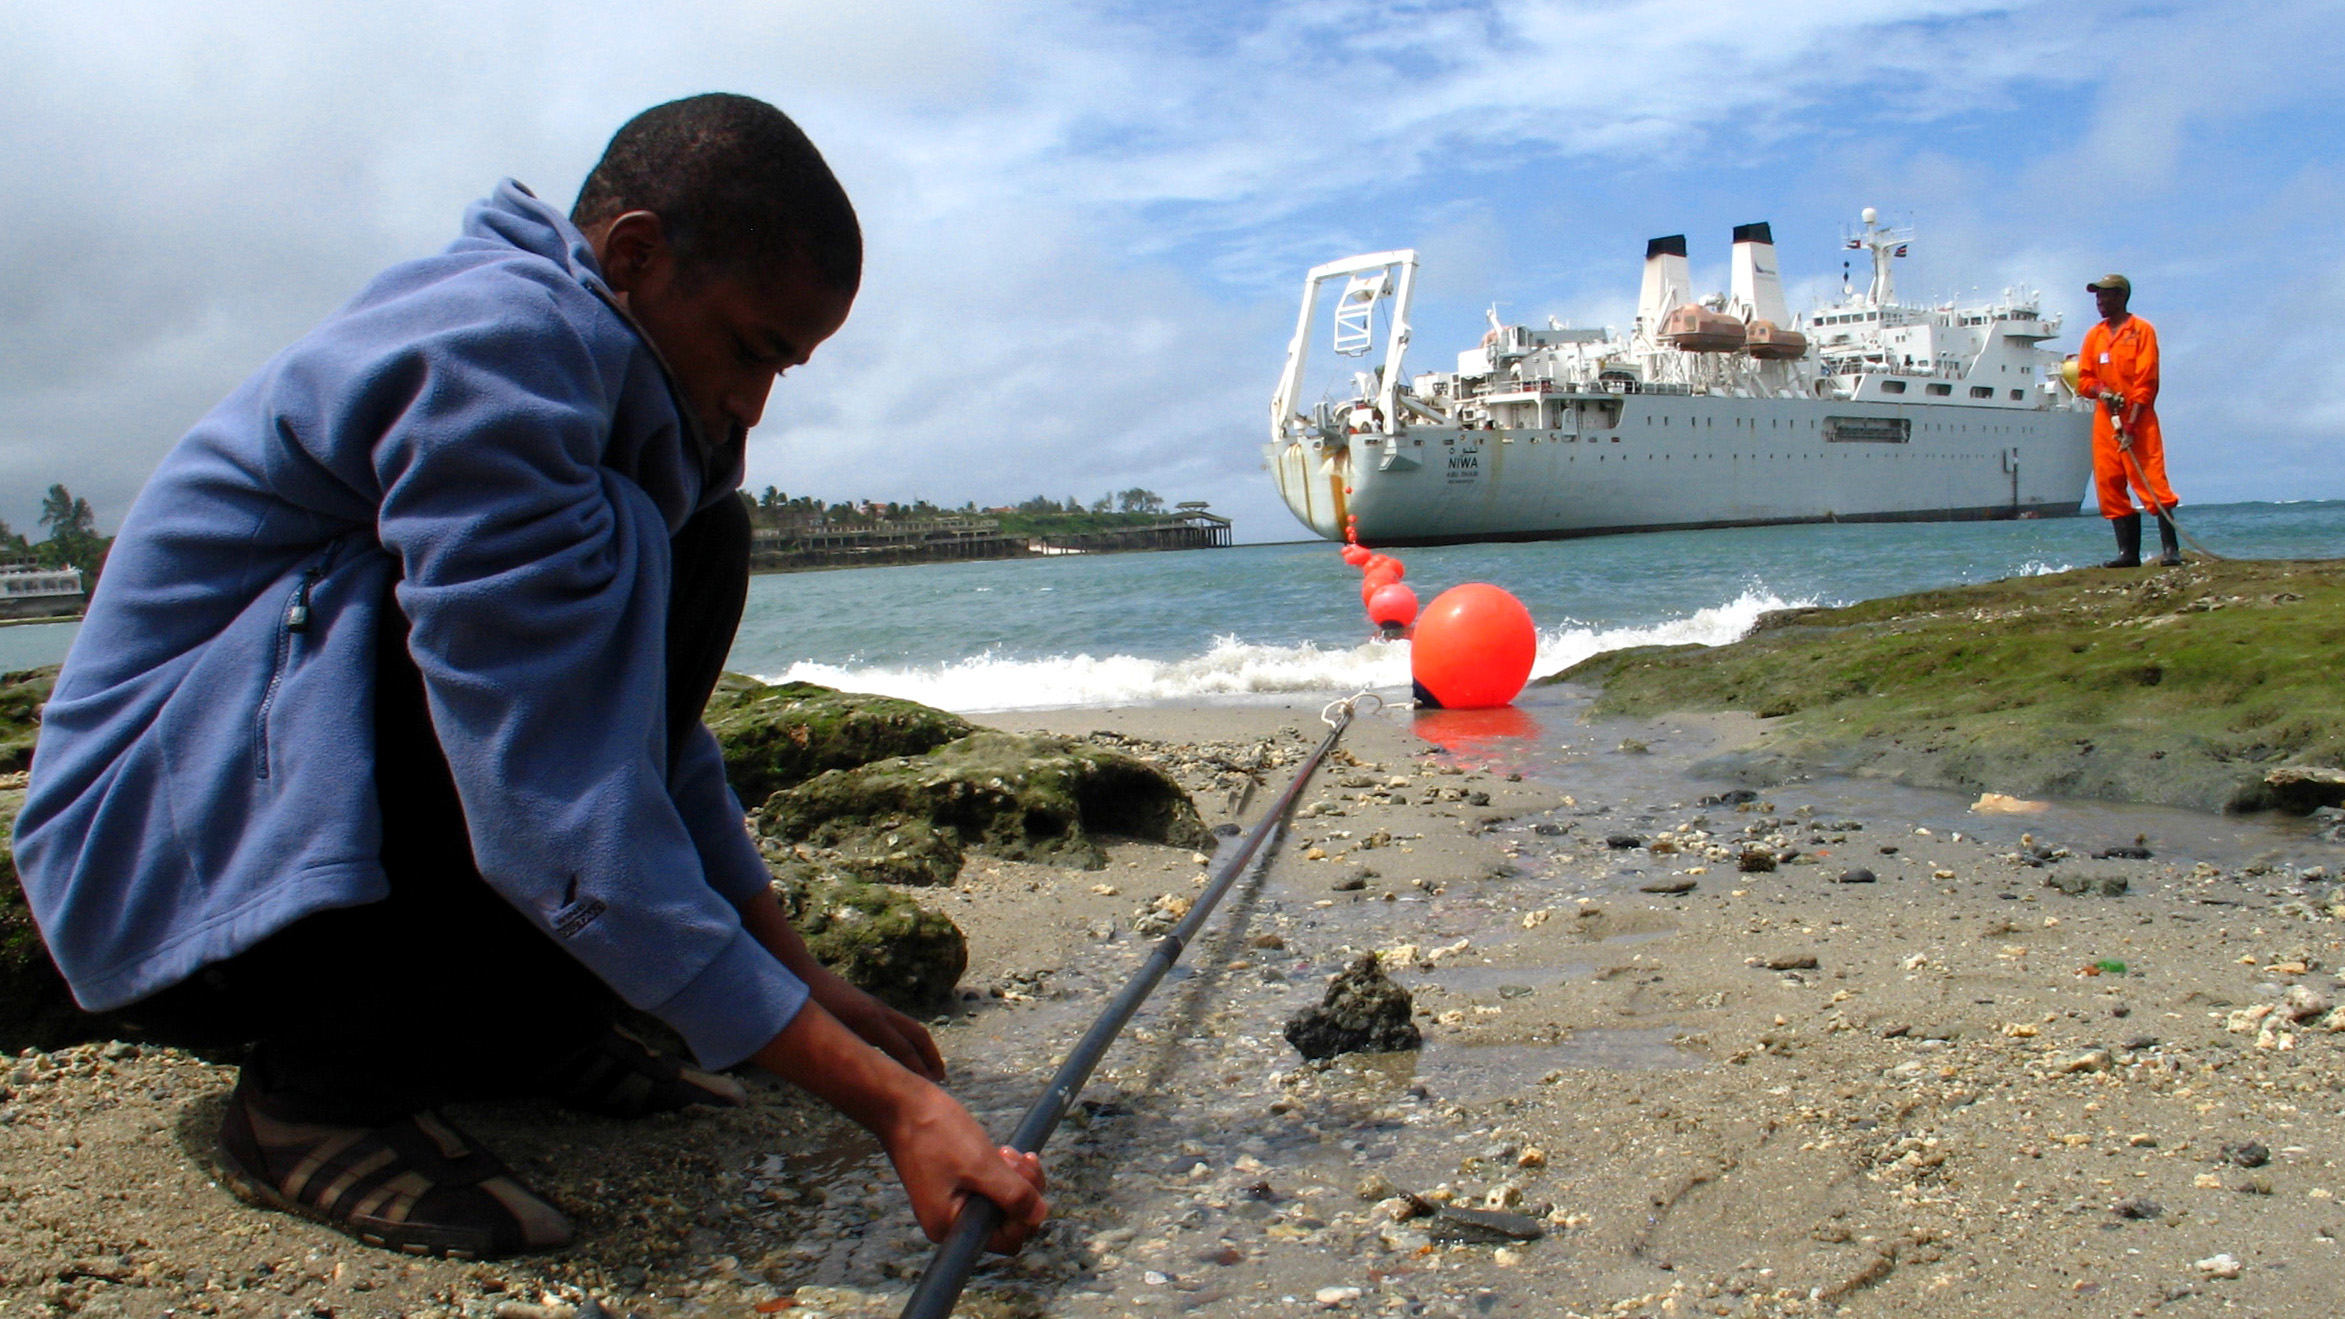 A Kenyan boy looks at the East African Marine Cable (TEAMS) fiber optic cable from the ship Niwa outside the Portuguese built Fort Jesus in the Kenyan coastal city of Mombasa, June 12, 2009. The cable has taken 18 months to reach the Kenyan coast by sea from the Middle East and is set to improve information and communication technology in Africa.